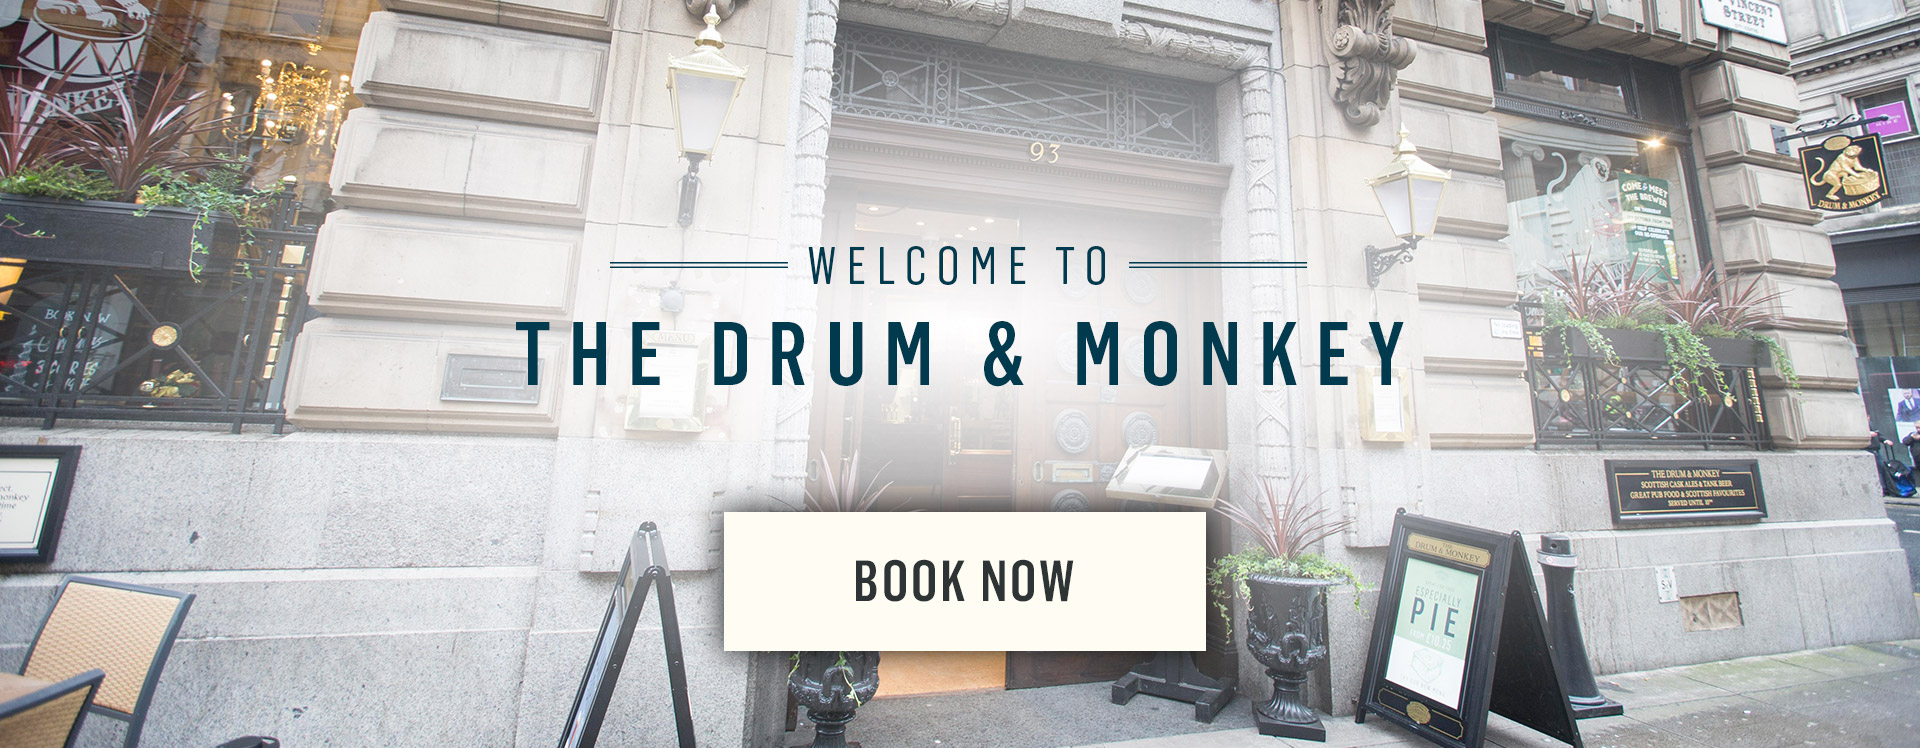 Welcome to The Drum and Monkey - Book Now